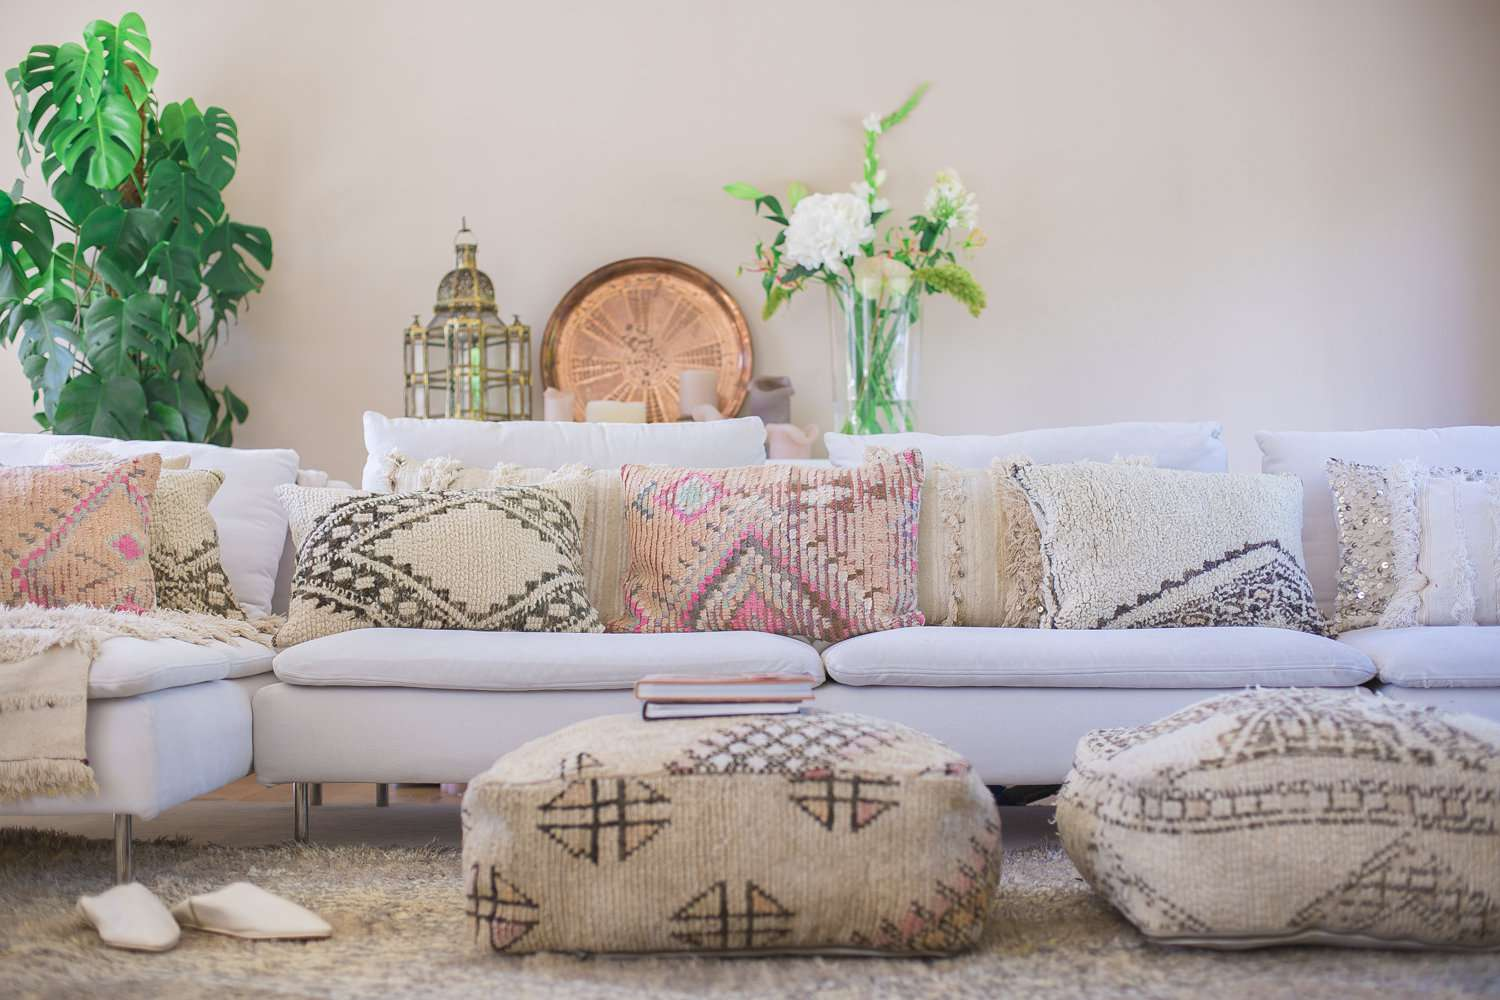 Moroccan style living room with pastel touches